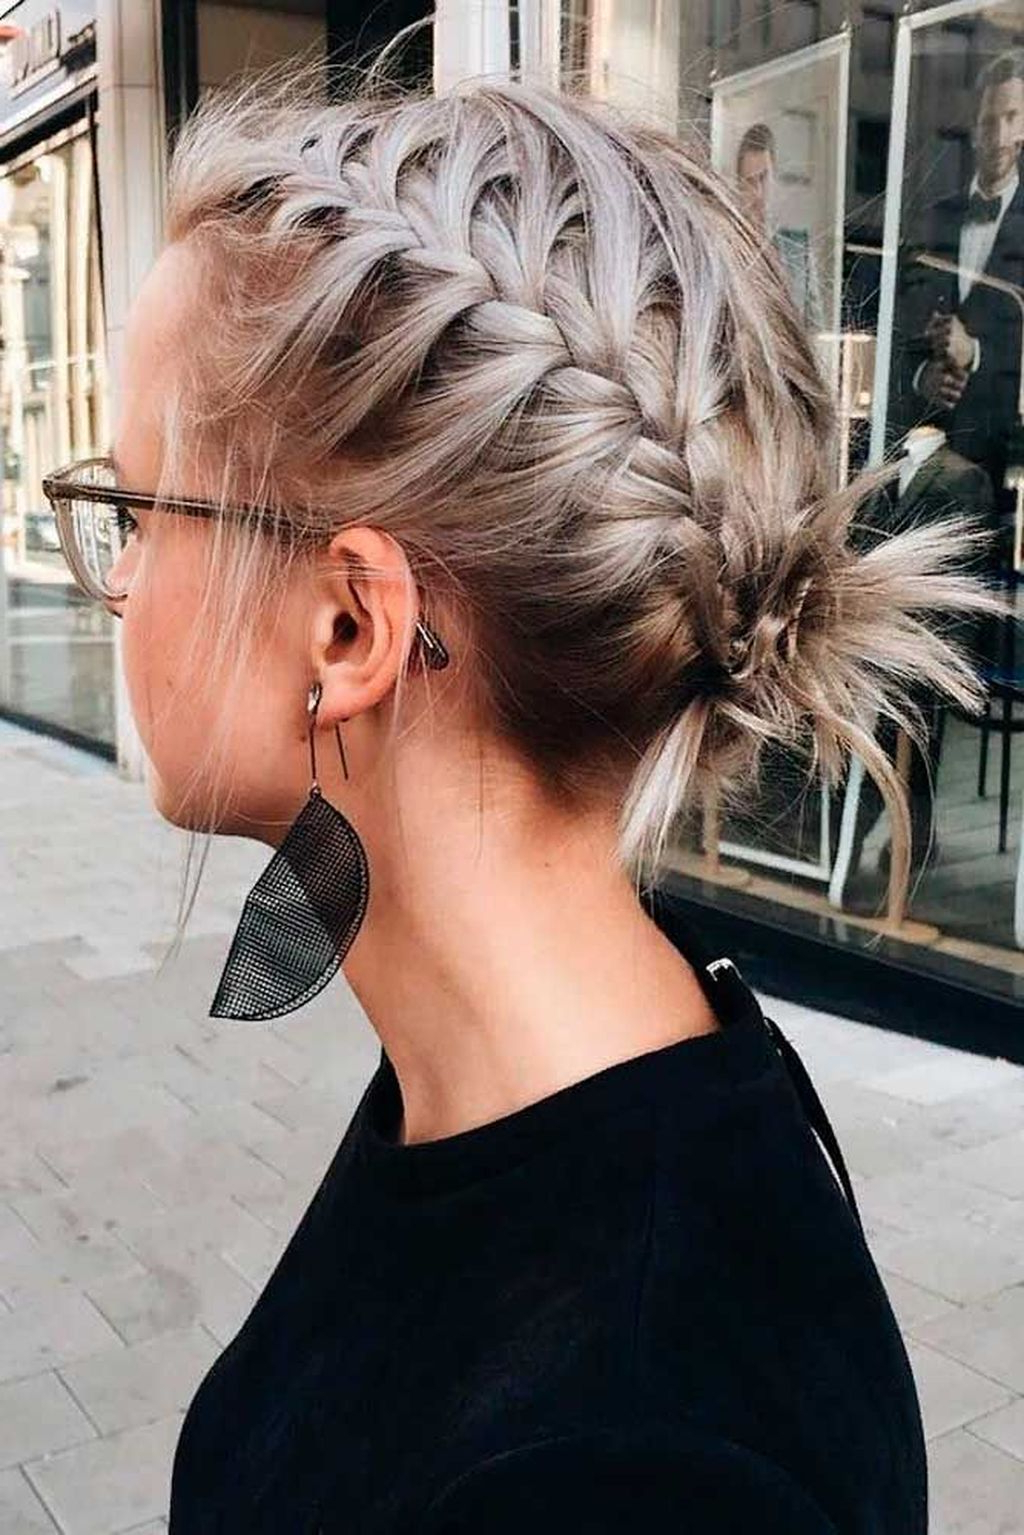 Fashionable Braided Short Hairstyles For 32 Braided Short Hairstyles Ideas Which Will Be Popular This (Gallery 20 of 20)